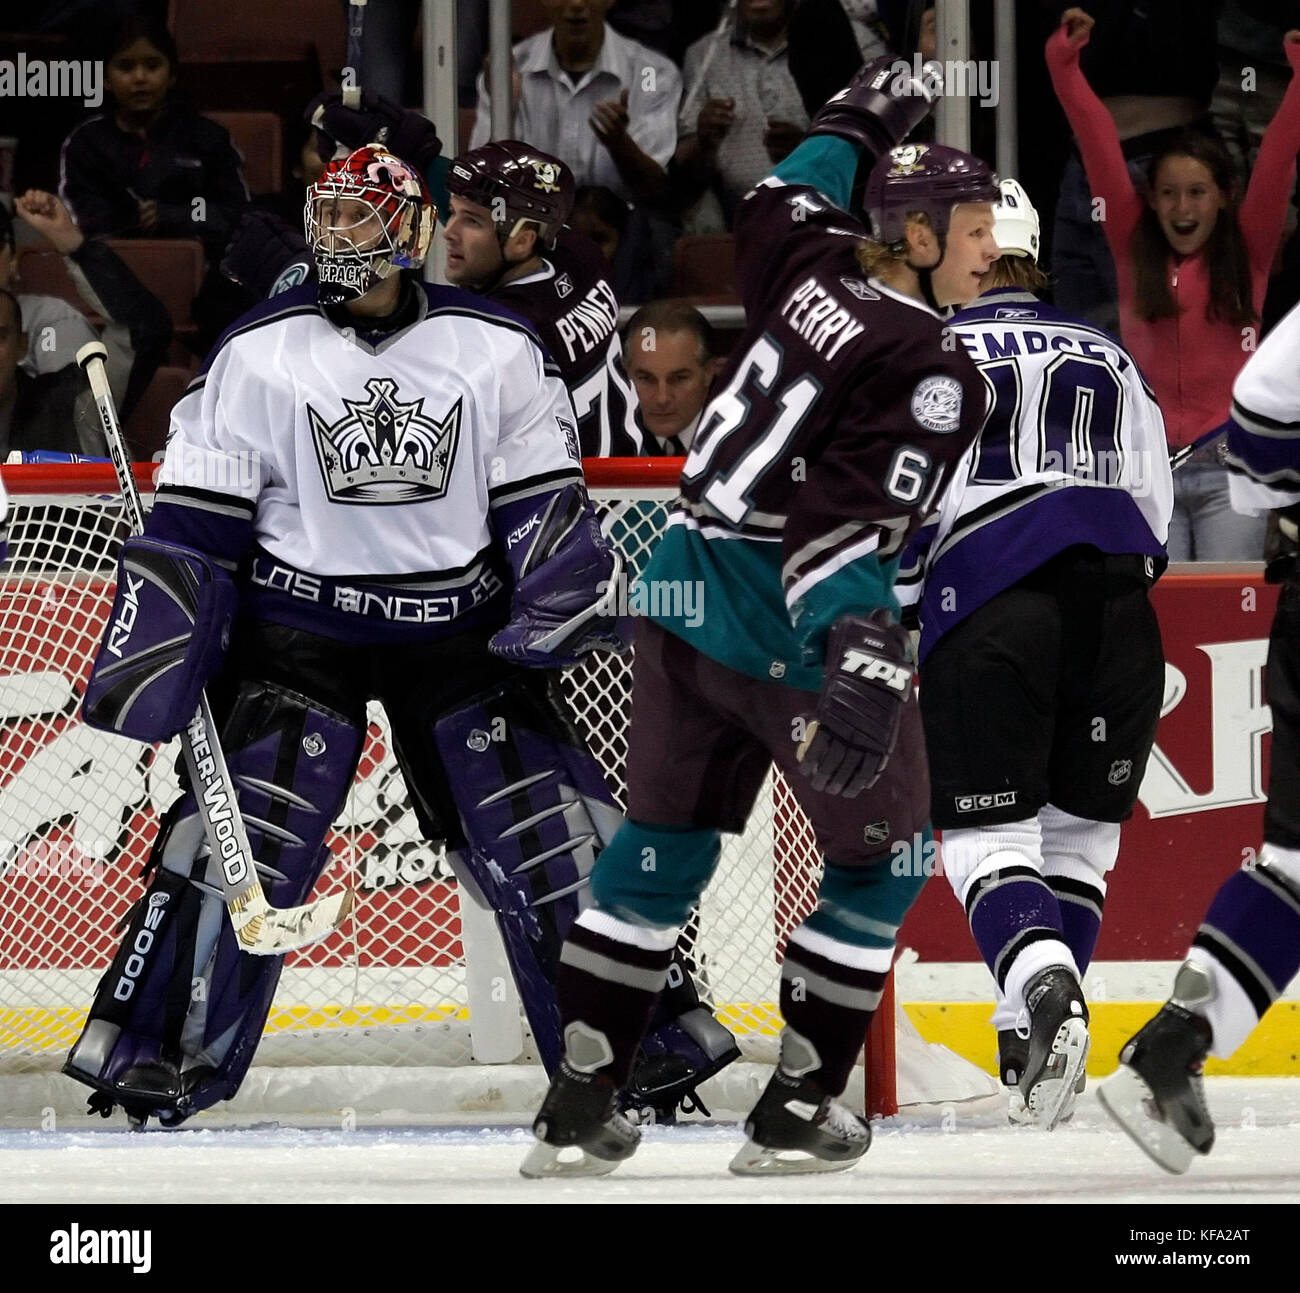 Anaheim Mighty Ducks' Corey Perry (61) celebrates a goal by teammate Andy McDonald against Los Angeles Kings - Stock Image